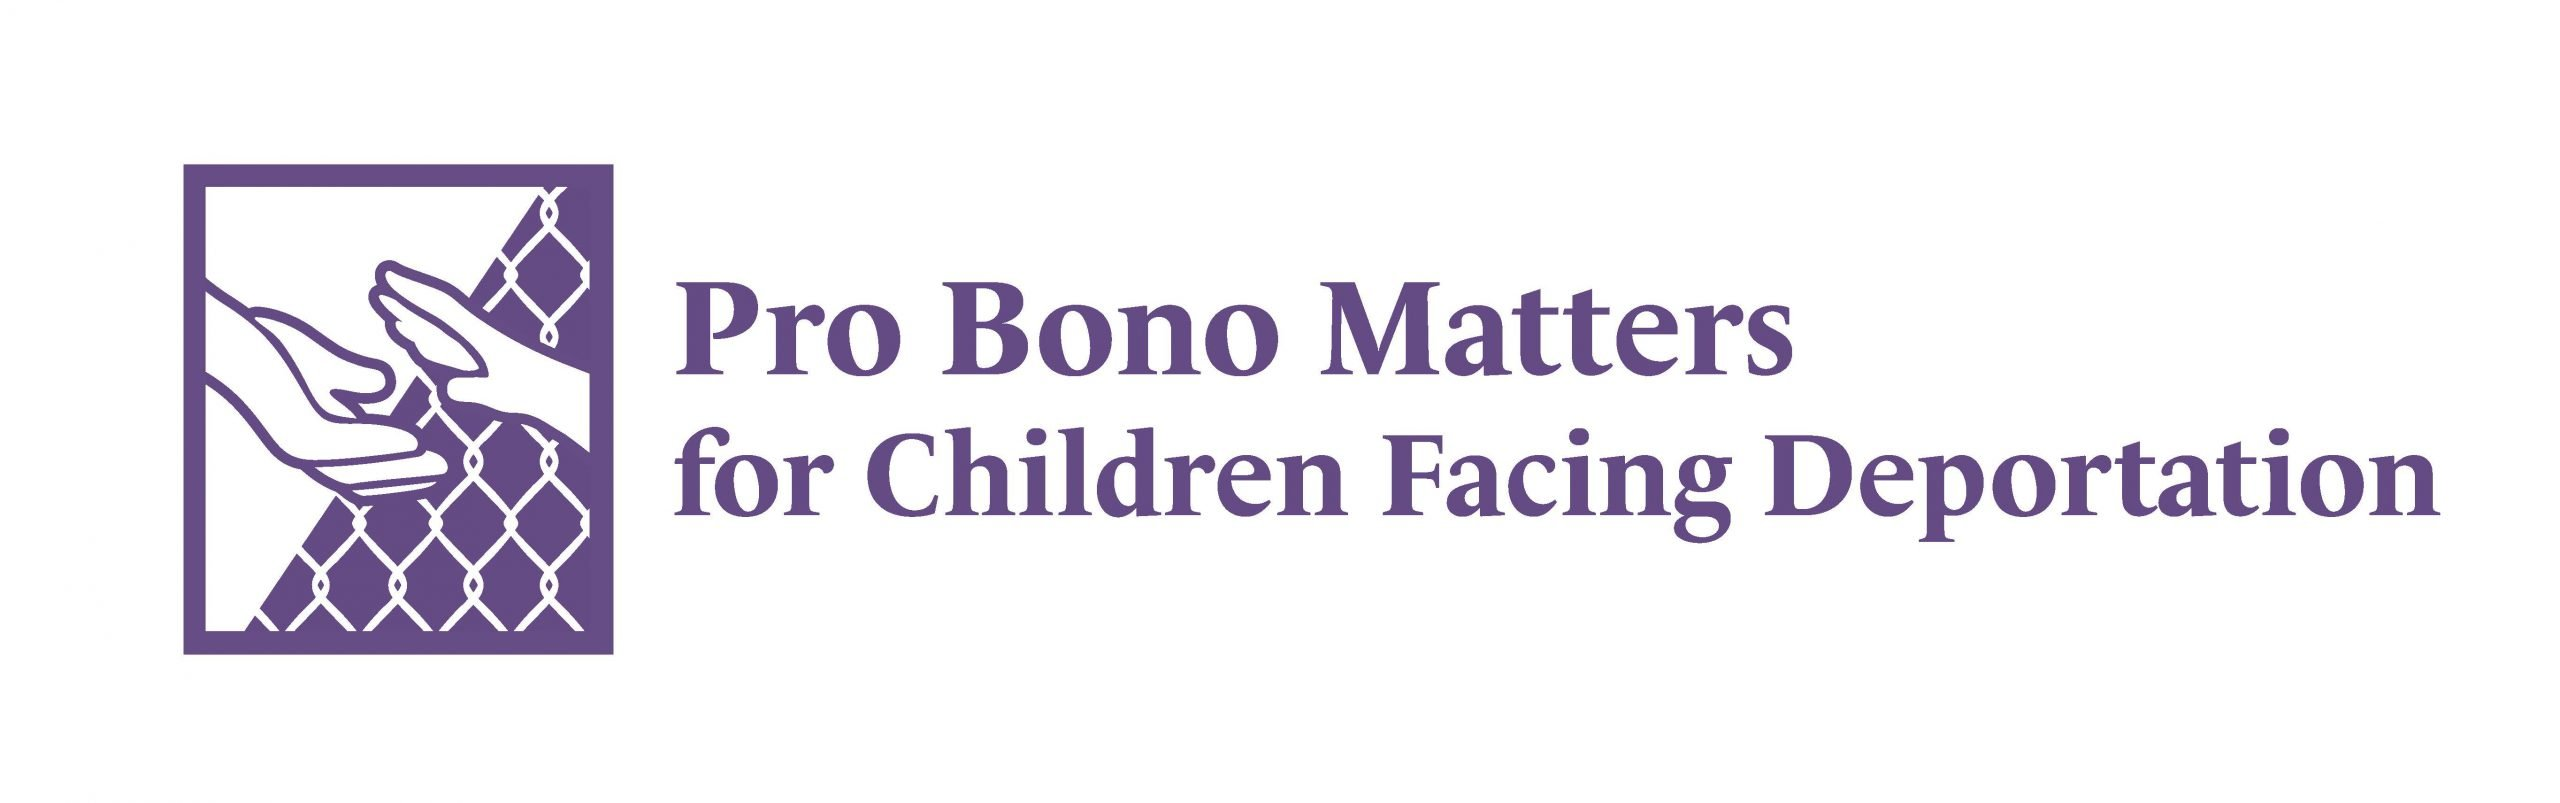 FINAL_Pro Bono Matters for Children Facing Deportation Logo_RGB